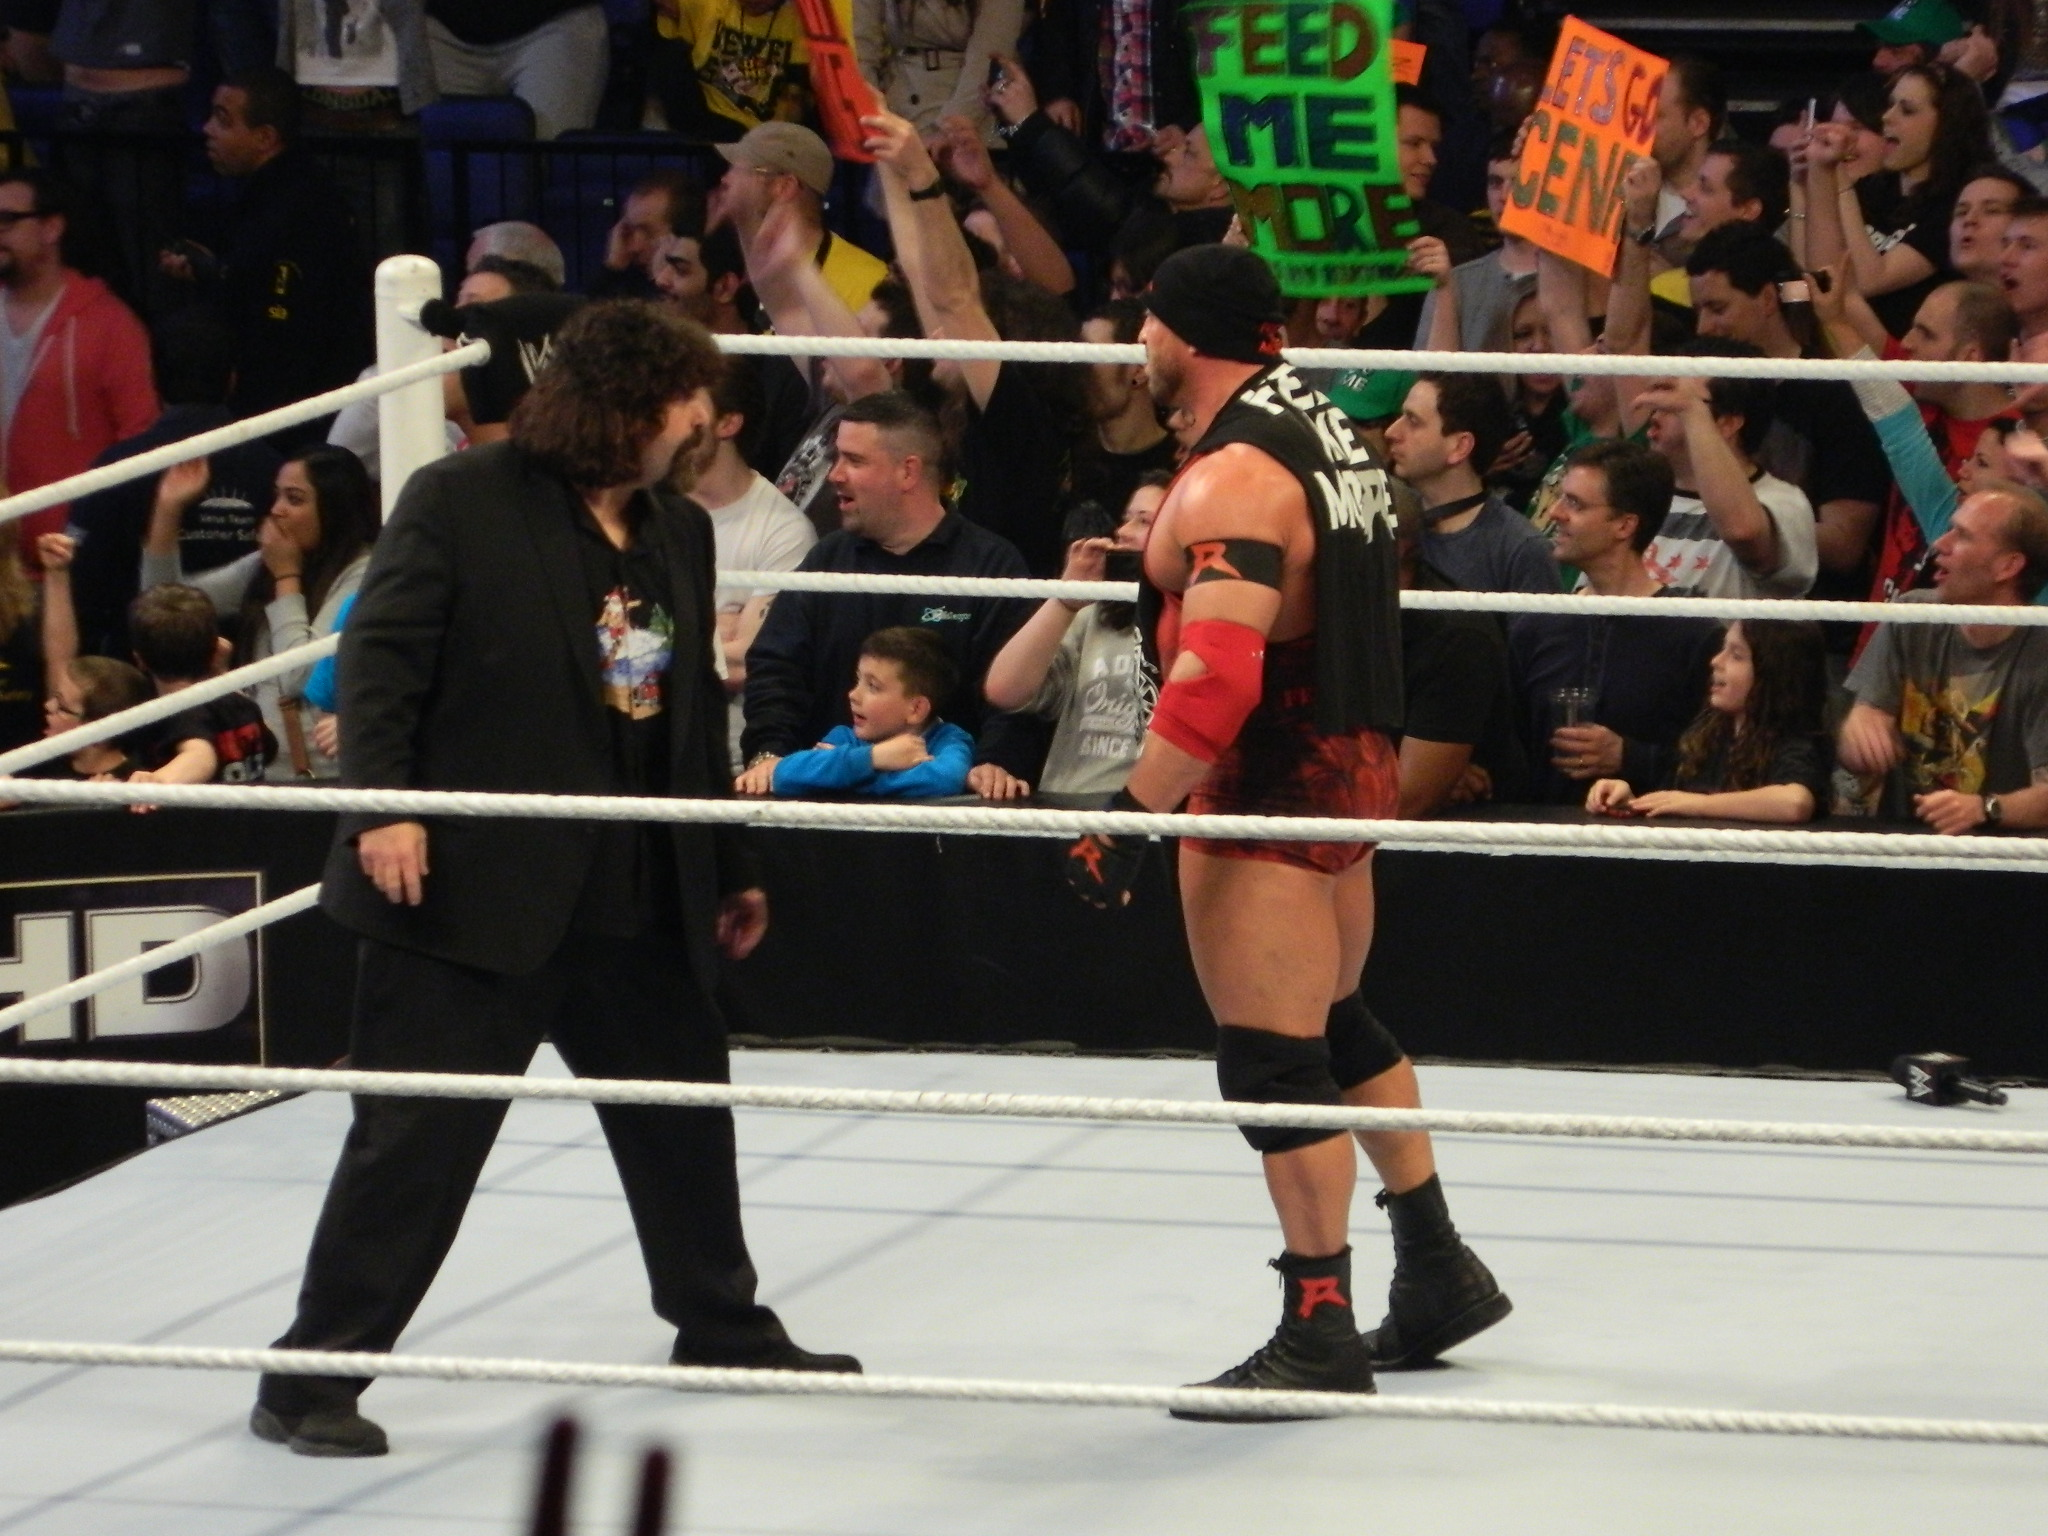 Wwe Raw And Smack Down April 2013 Special